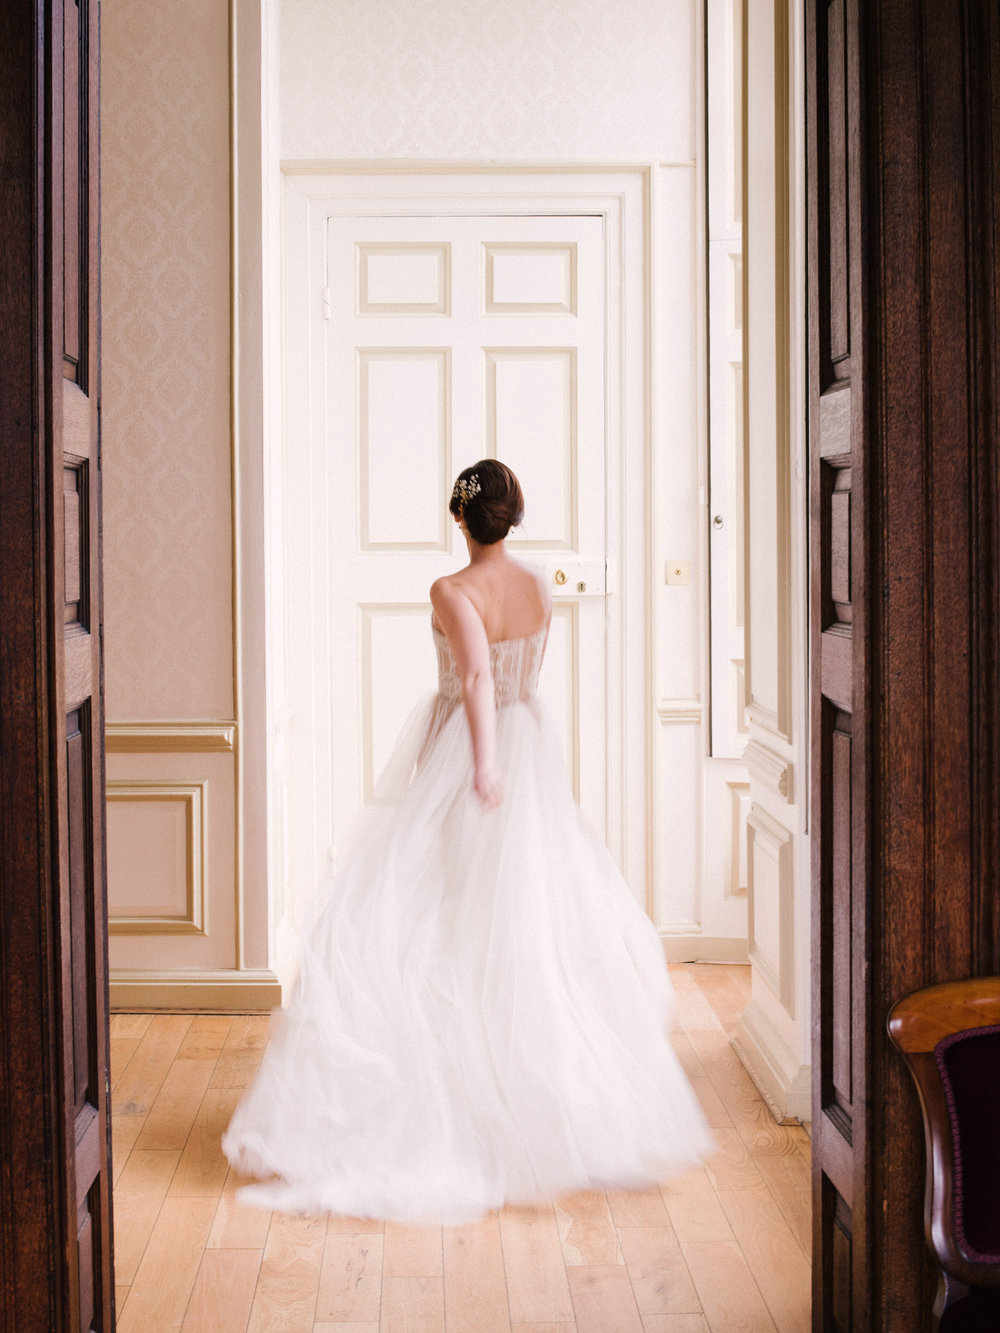 The Timeless Stylist-Elegant and Romantic Wedding Styling-Timeless Fine Art Bride